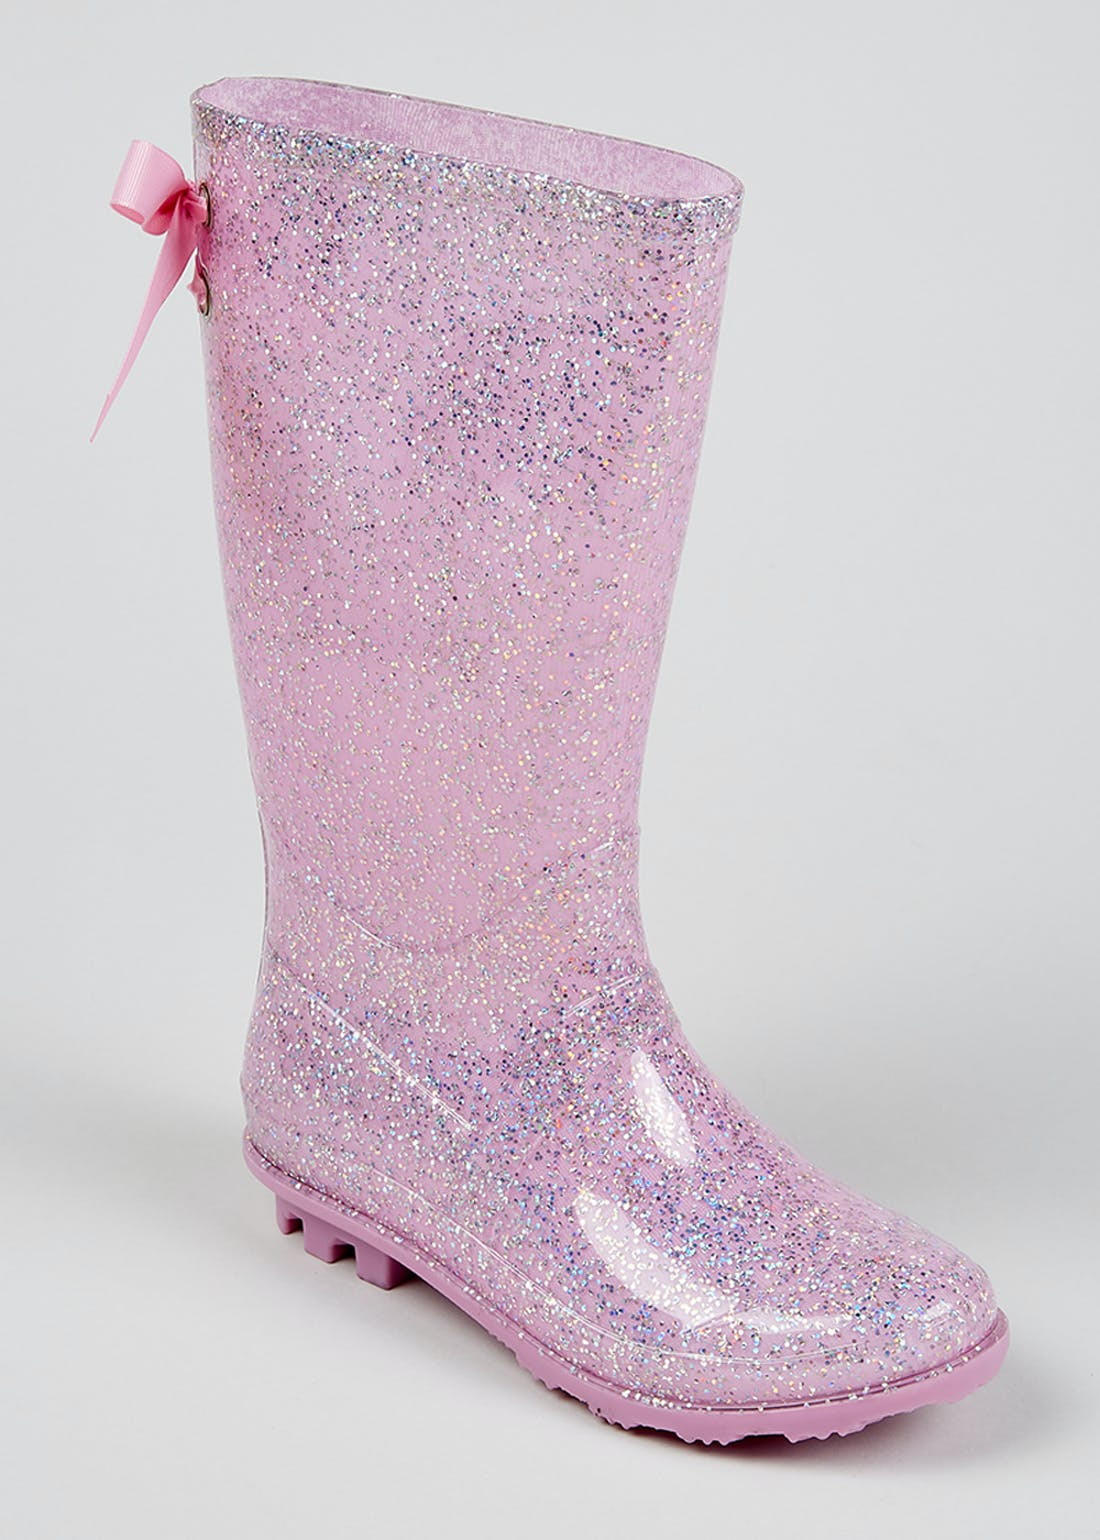 Girls Pink Ribbon Glitter Wellies (Younger 10-Older 5)